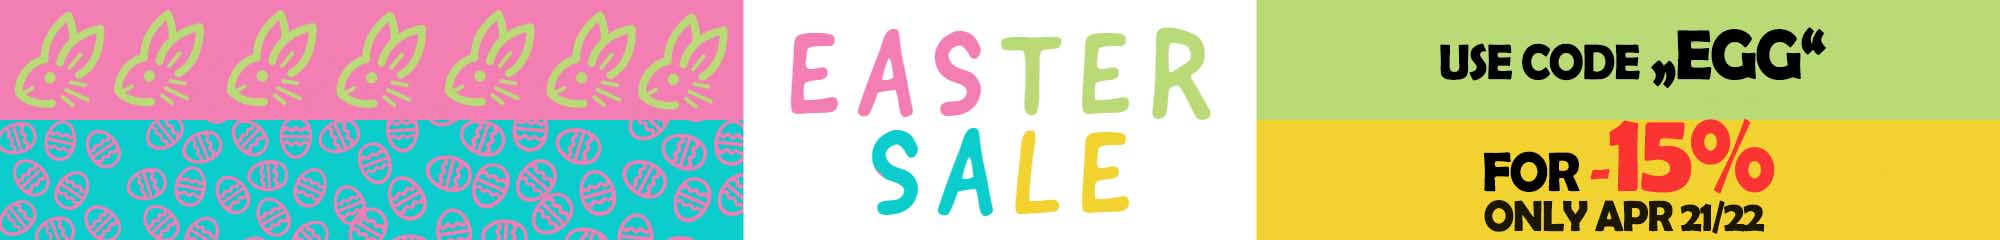 Happy Easter Sale 2019